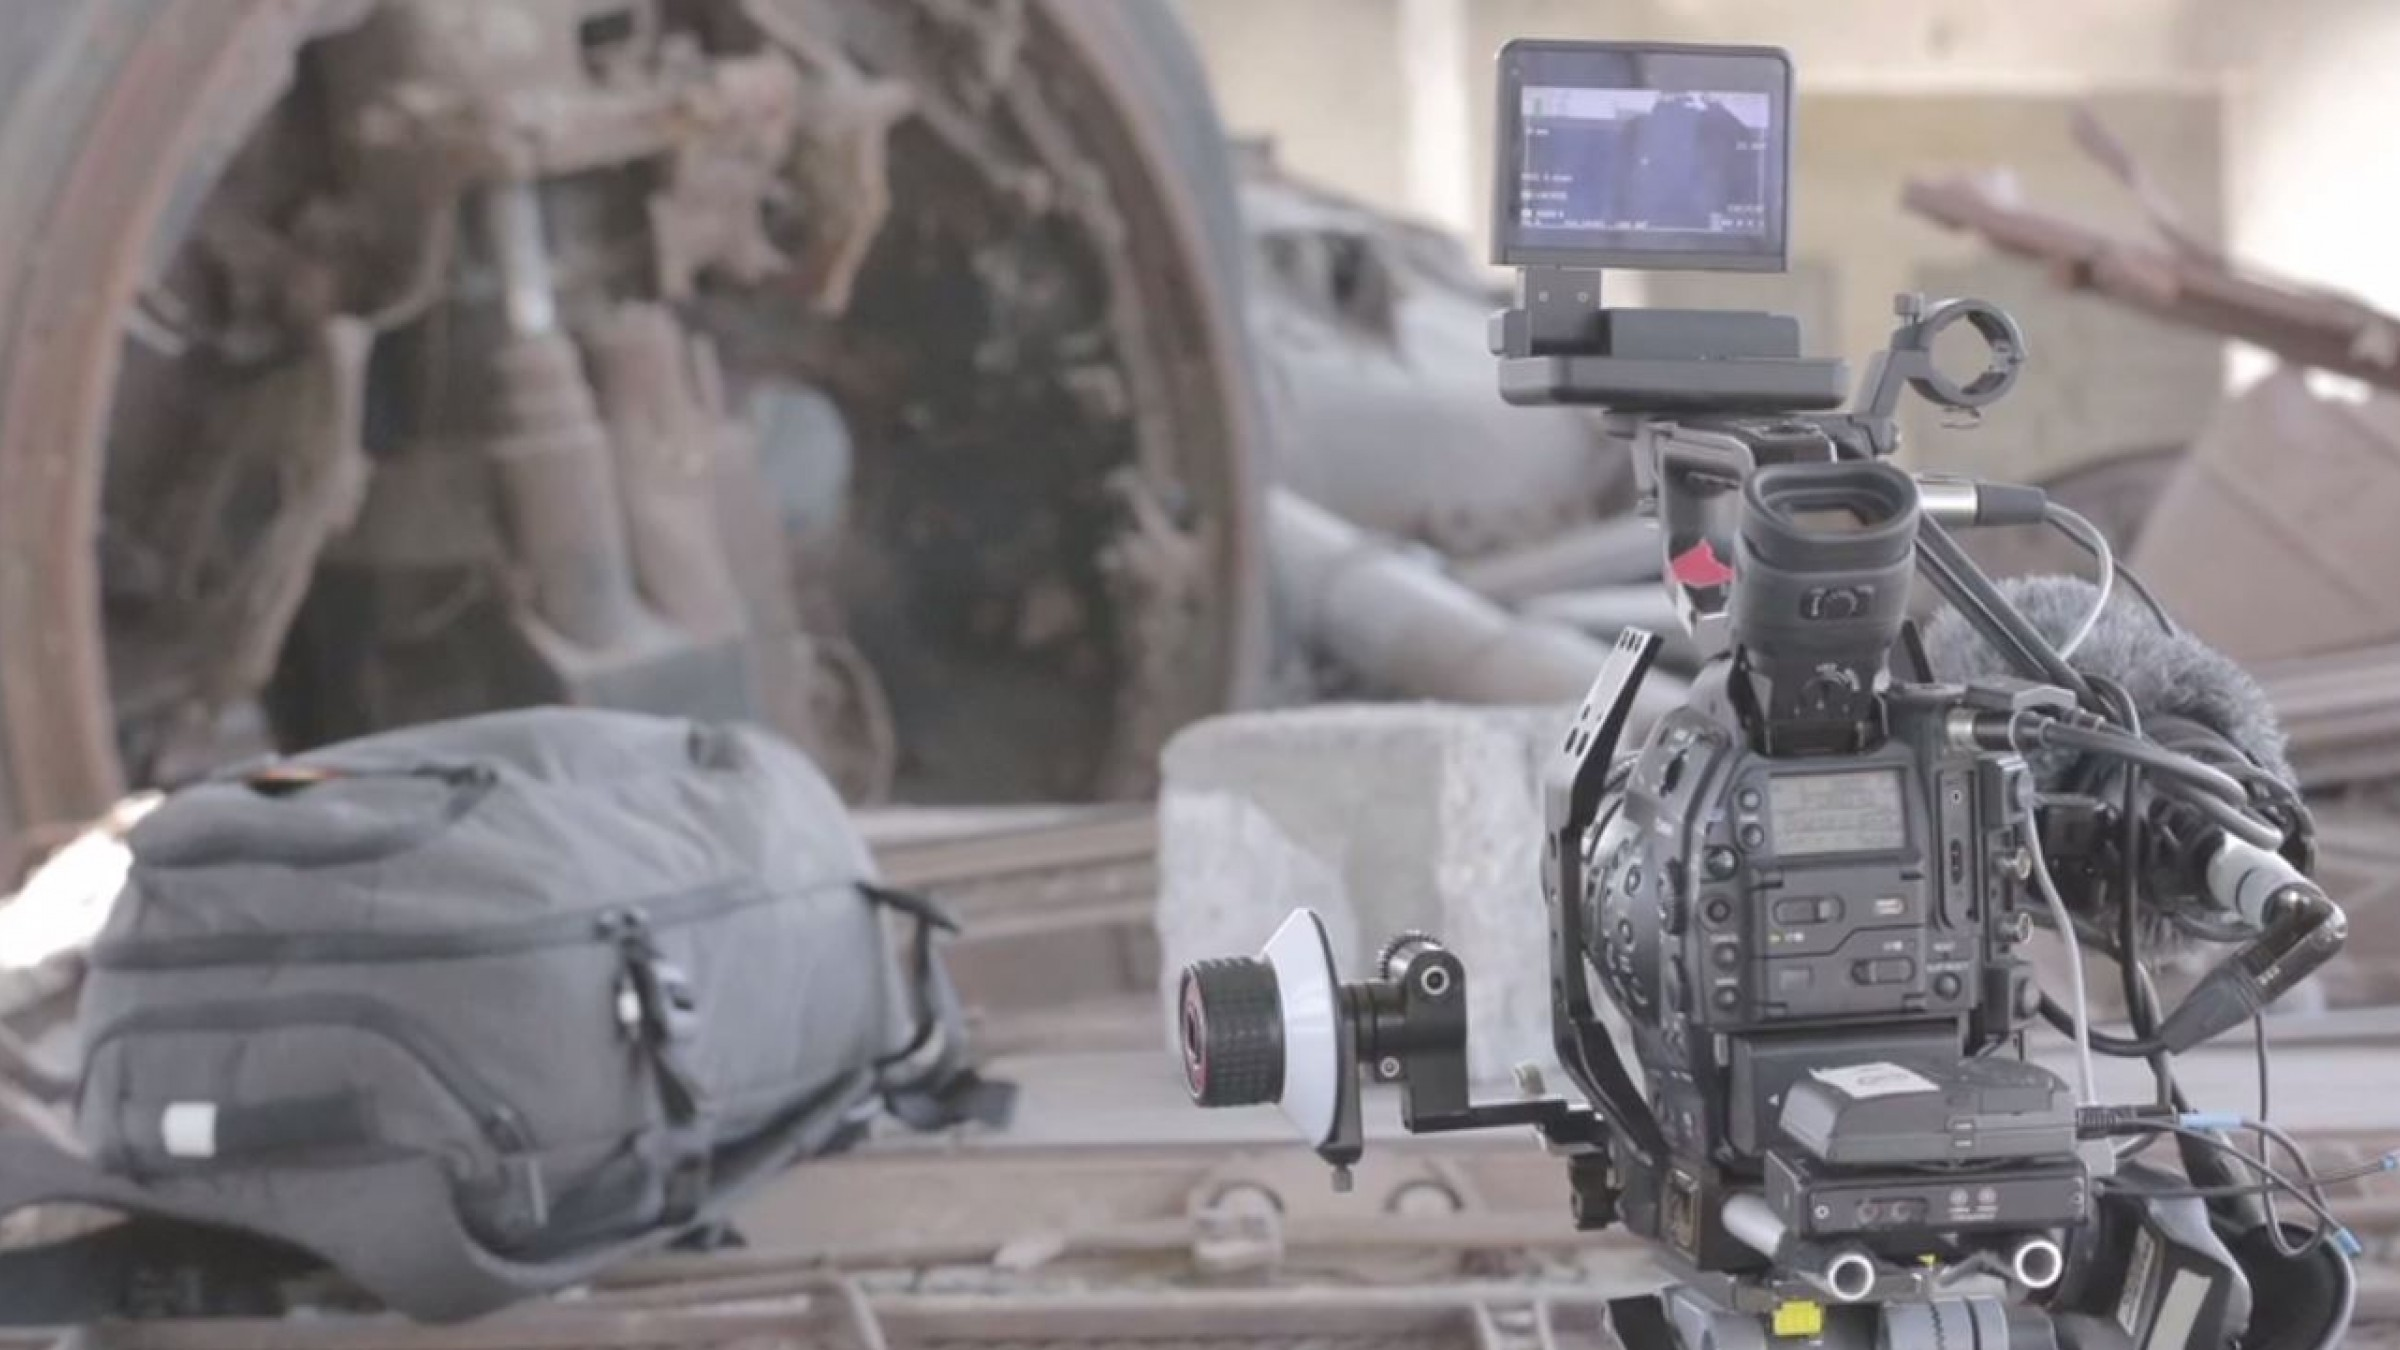 Check out the Customized Camera Rigs Used by VICE News as They Travel the World